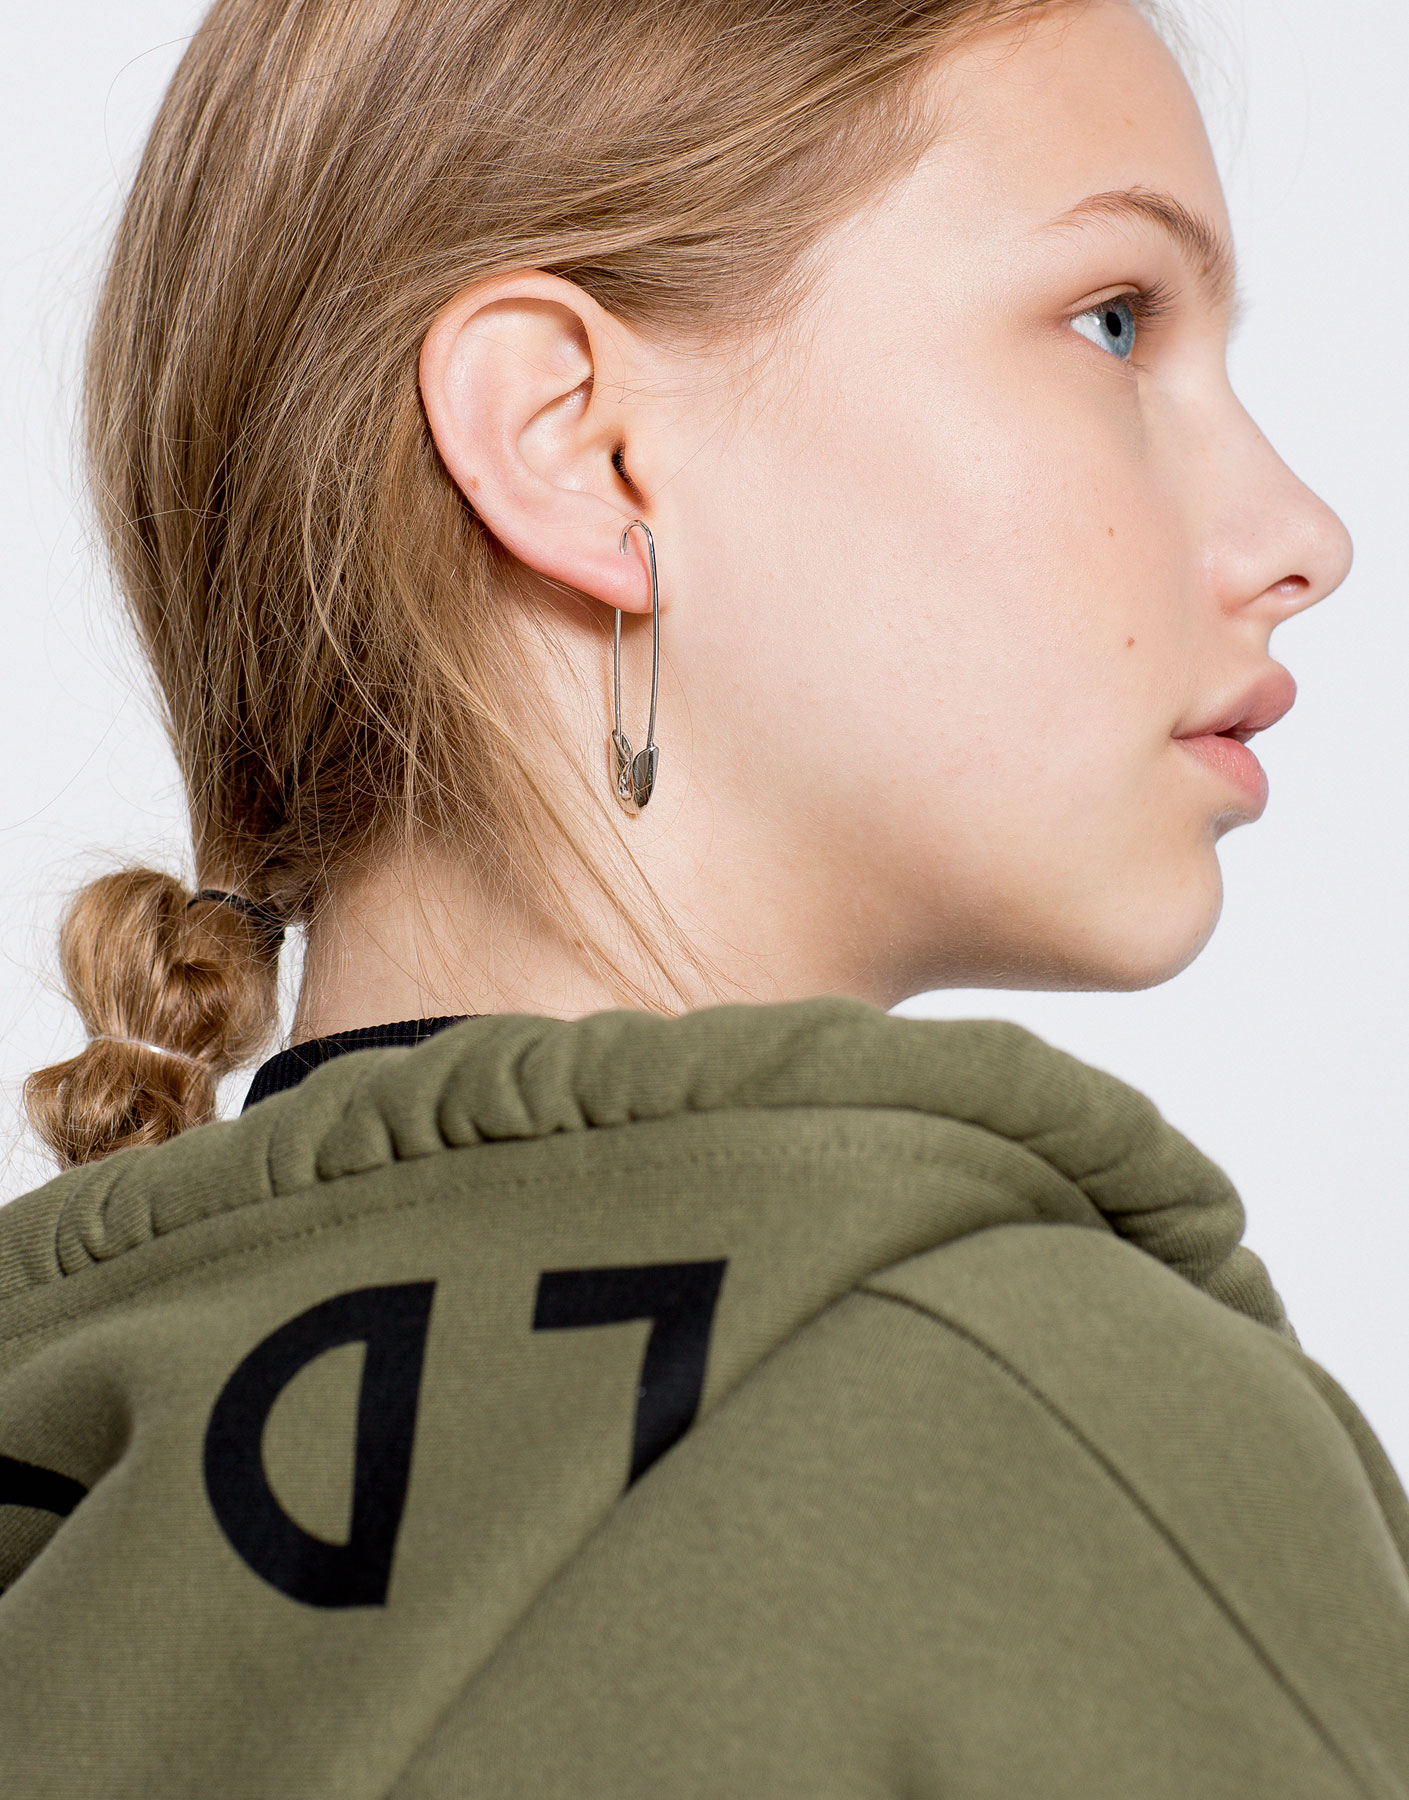 Safety-pin shaped earrings